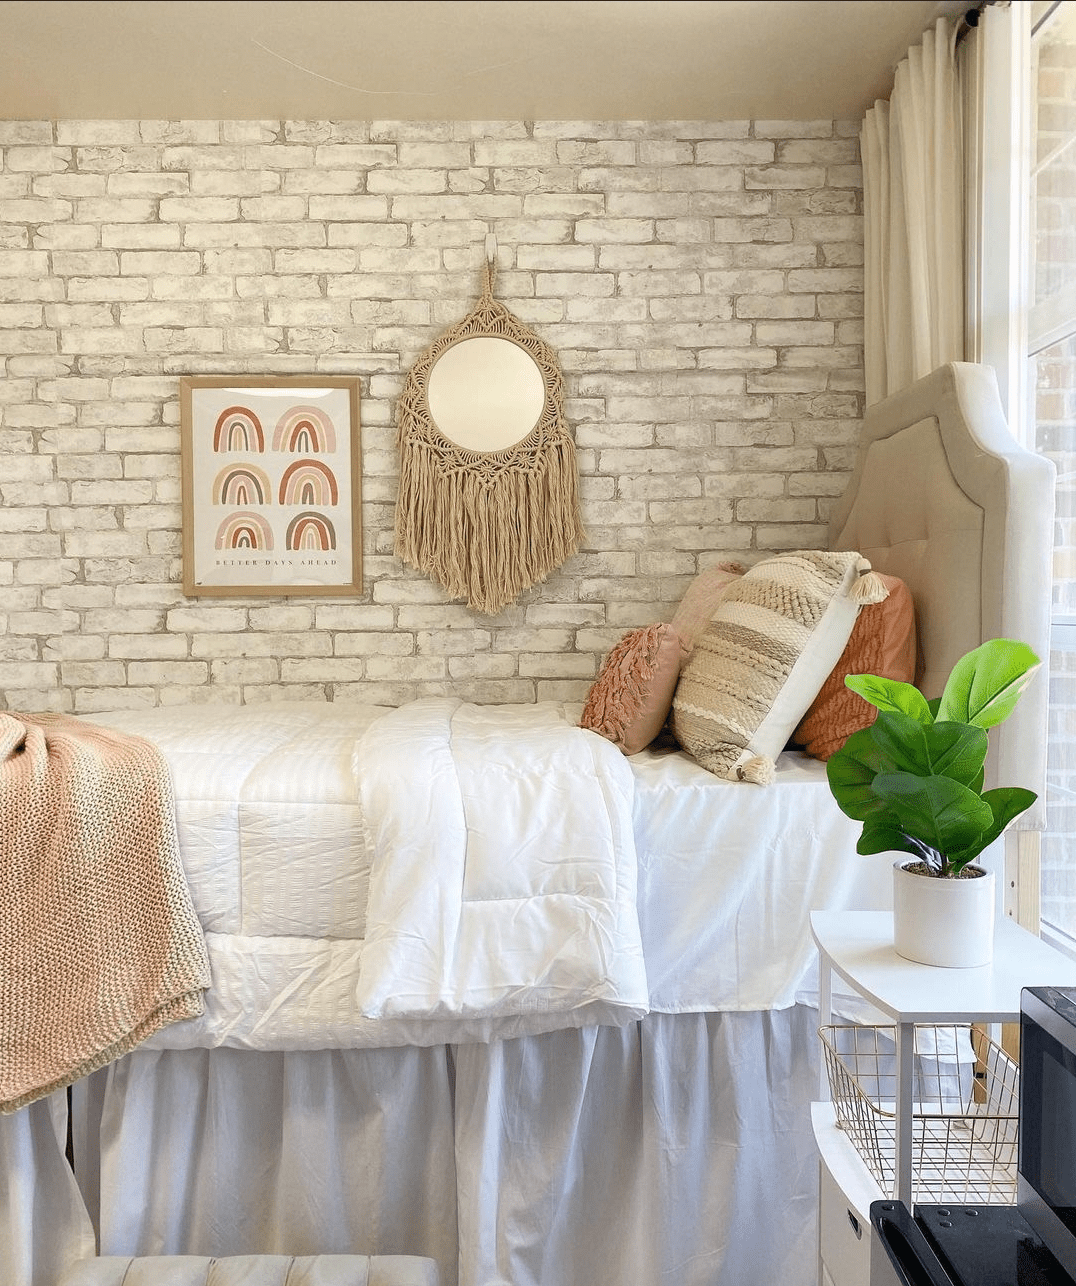 5 Innovative Ways To Decorate Your Dorm Room